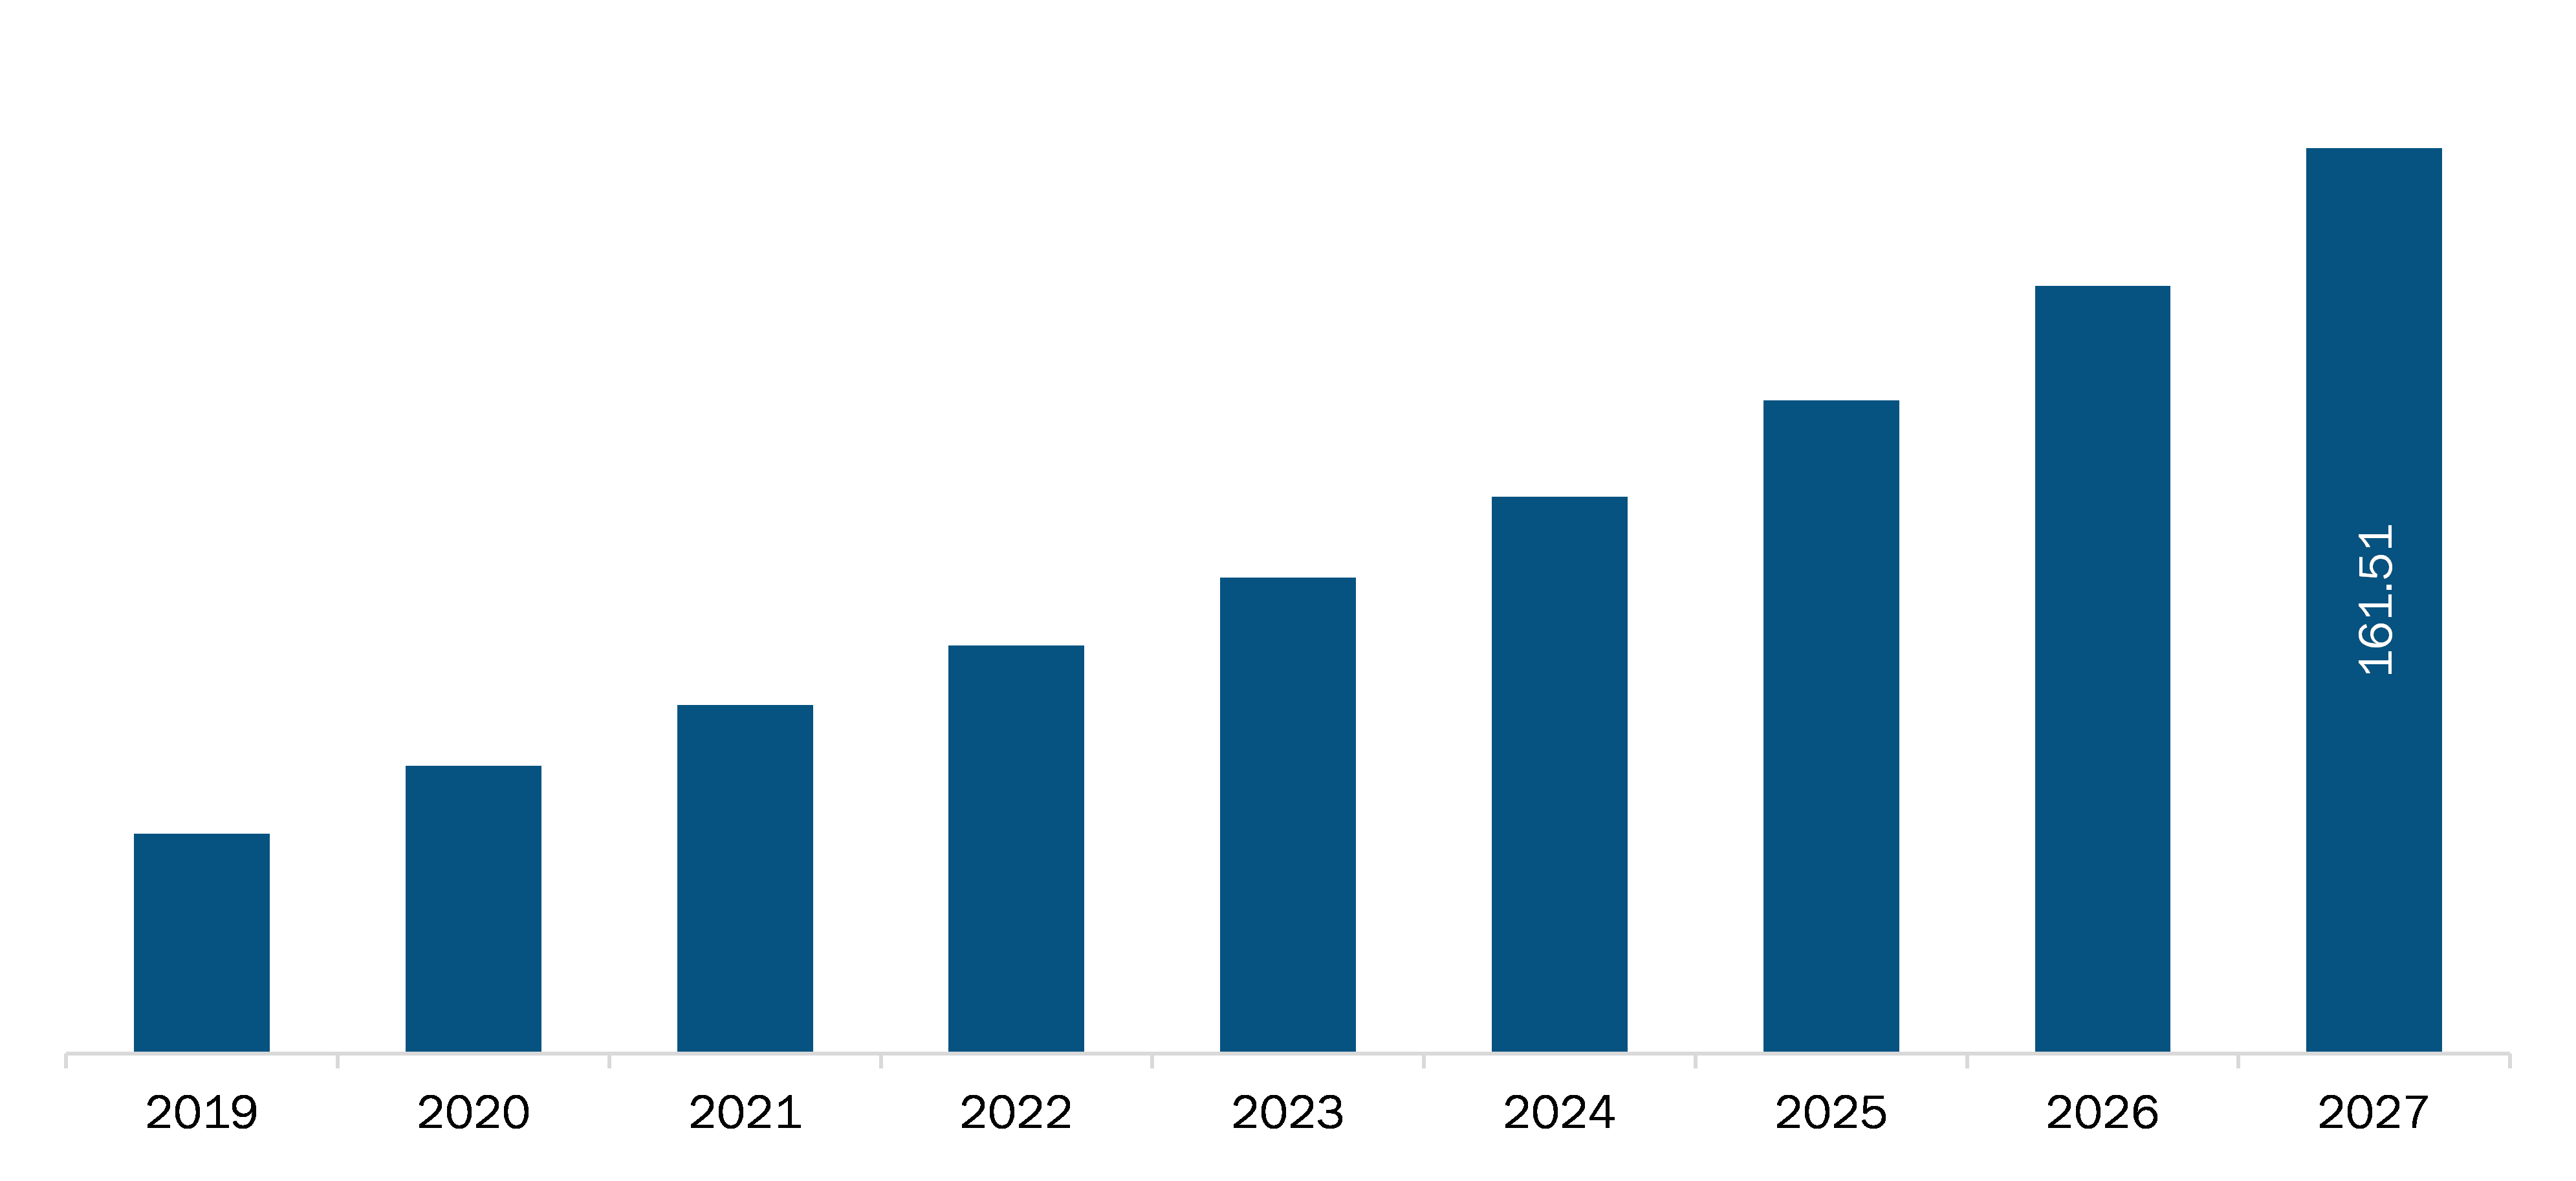 UK Teledentistry Market Revenue and Forecasts to 2027 (US$ MN)